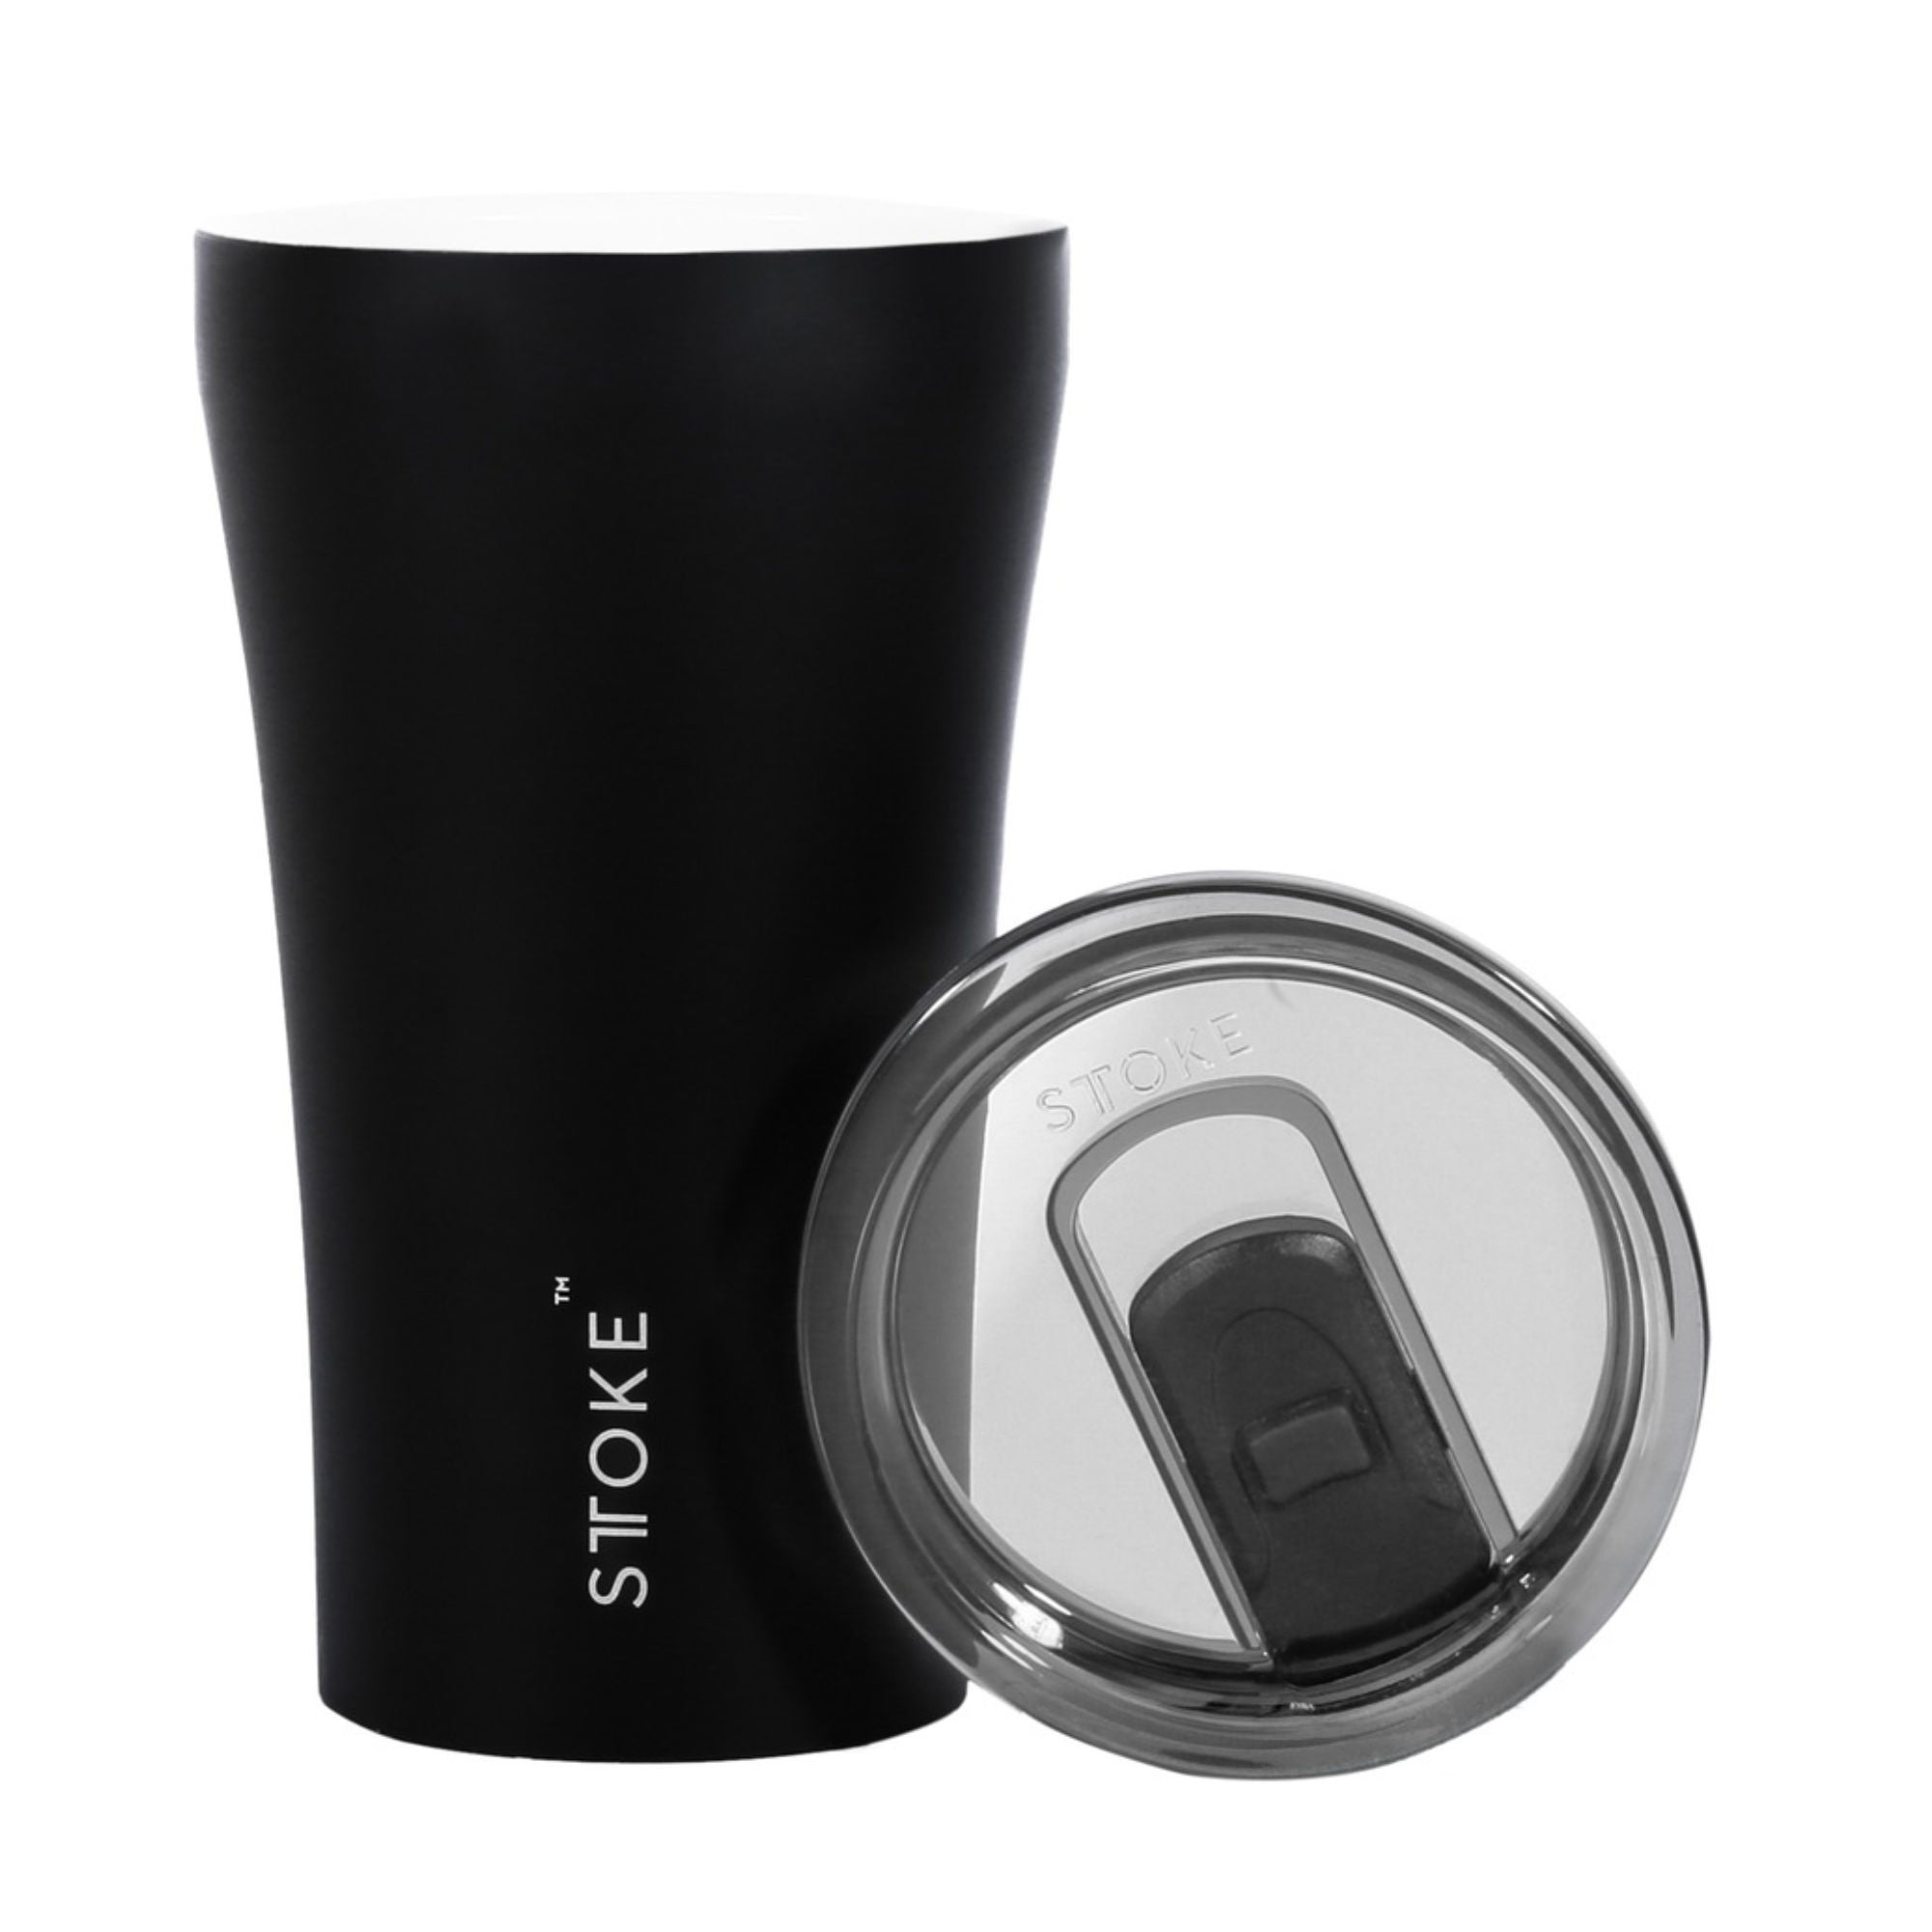 Sttoke Ceramic Reusable Cup 340ml , Black